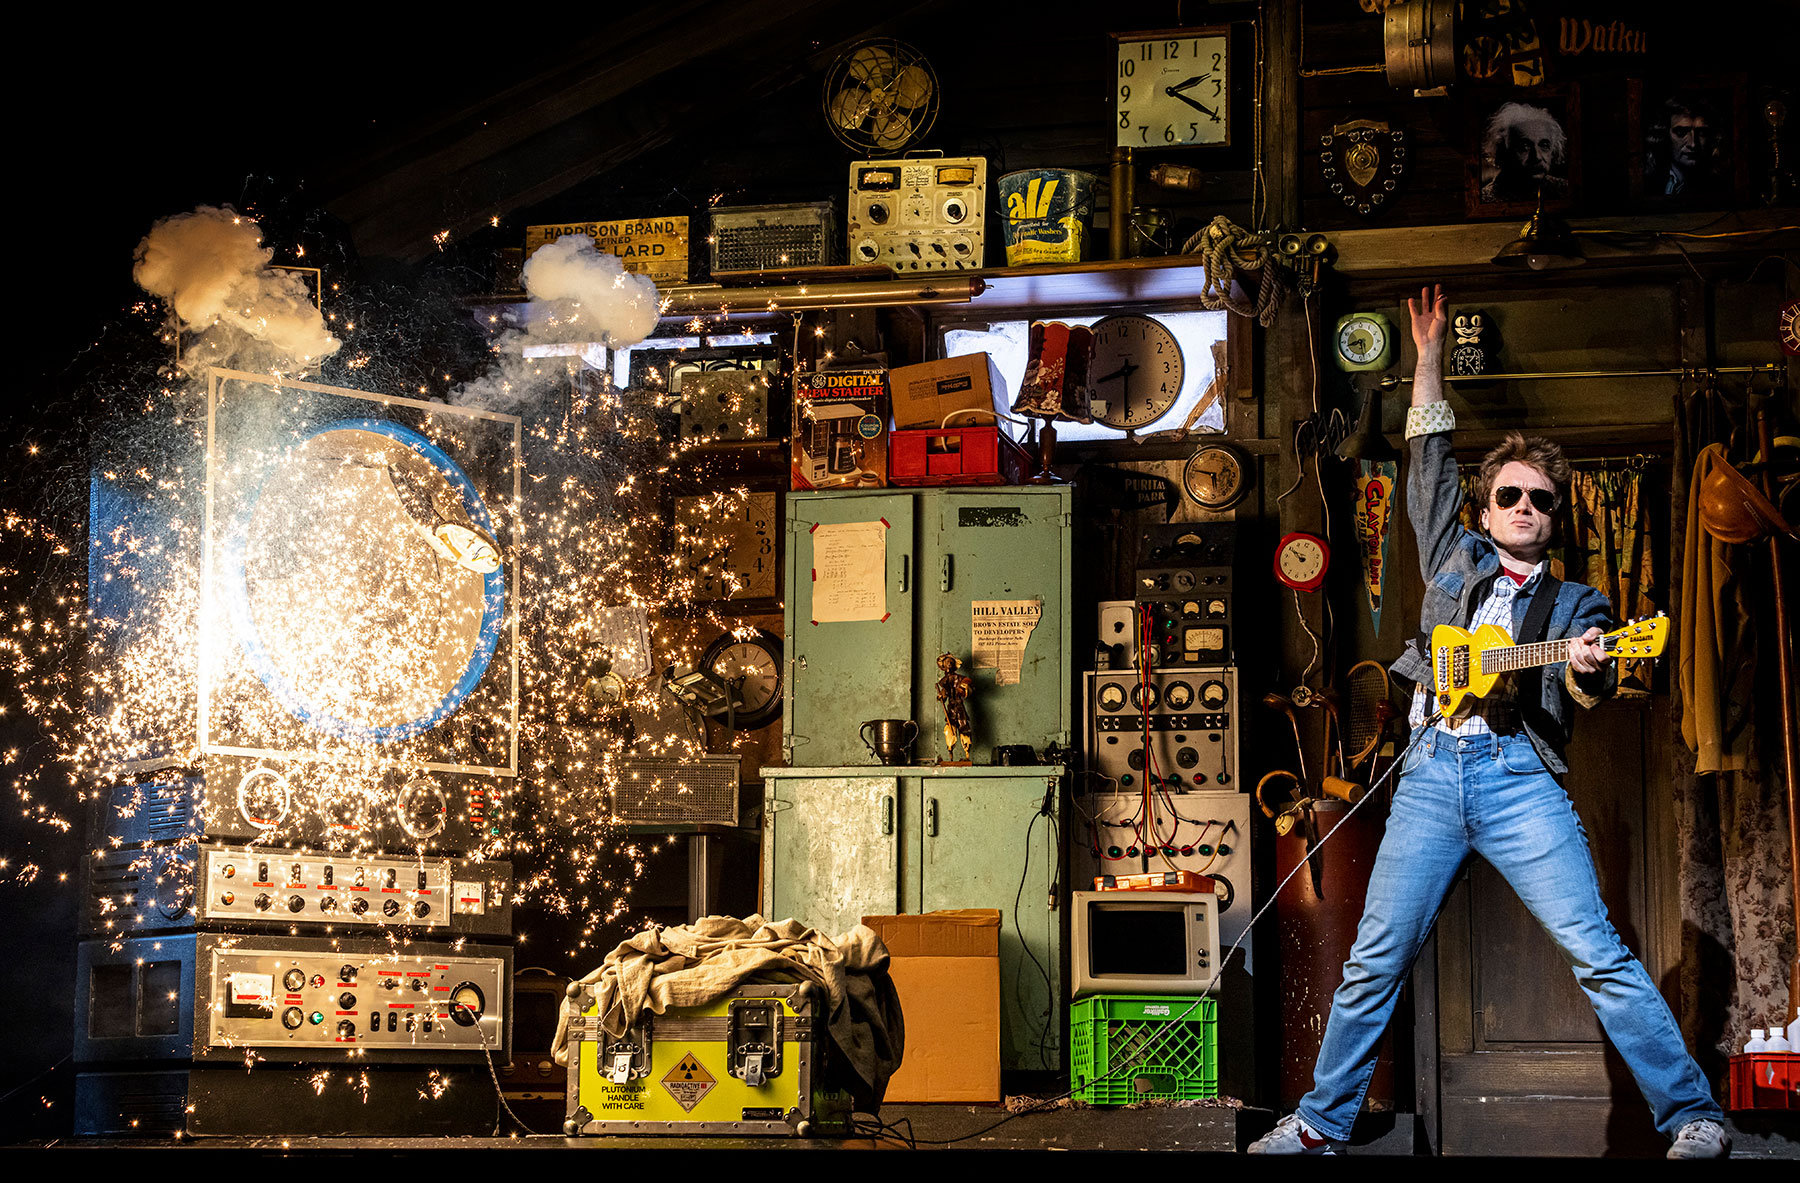 Olly Dobson as Marty McFly in Back to the Future the Musical © Sean Ebsworth Barnes